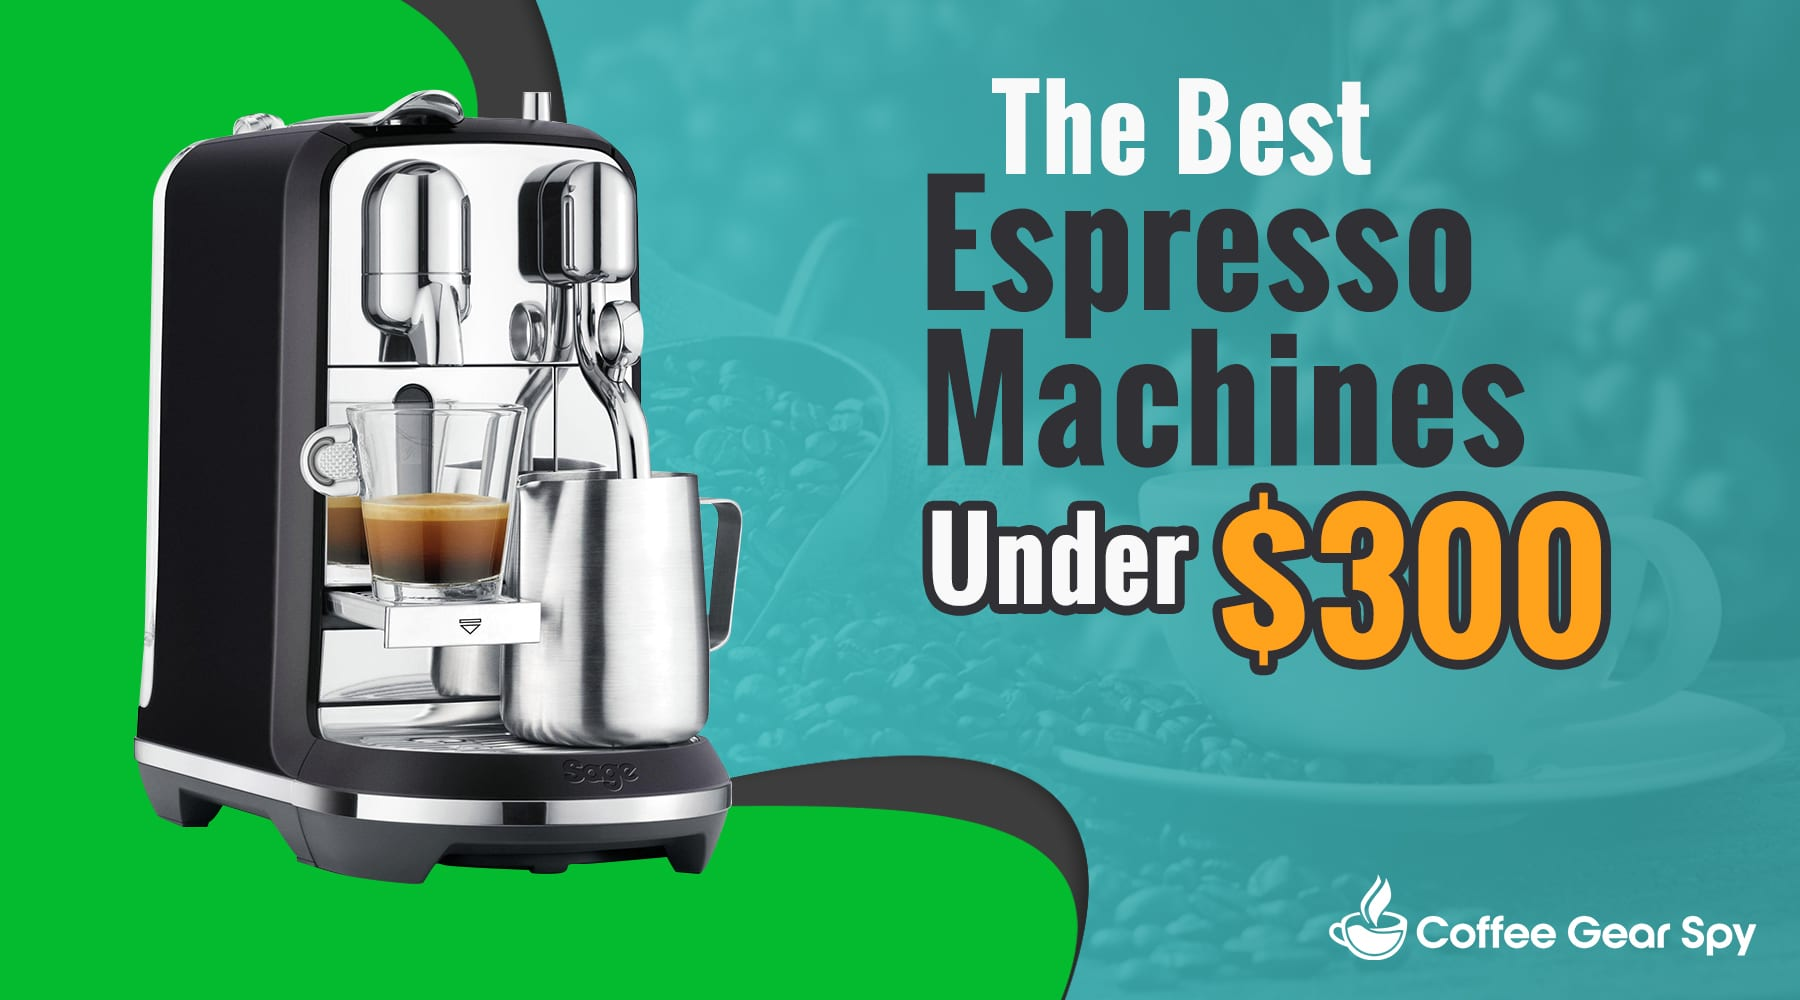 The Top 5 Best Espresso Machines Under $300 – The Complete Round-Up Review